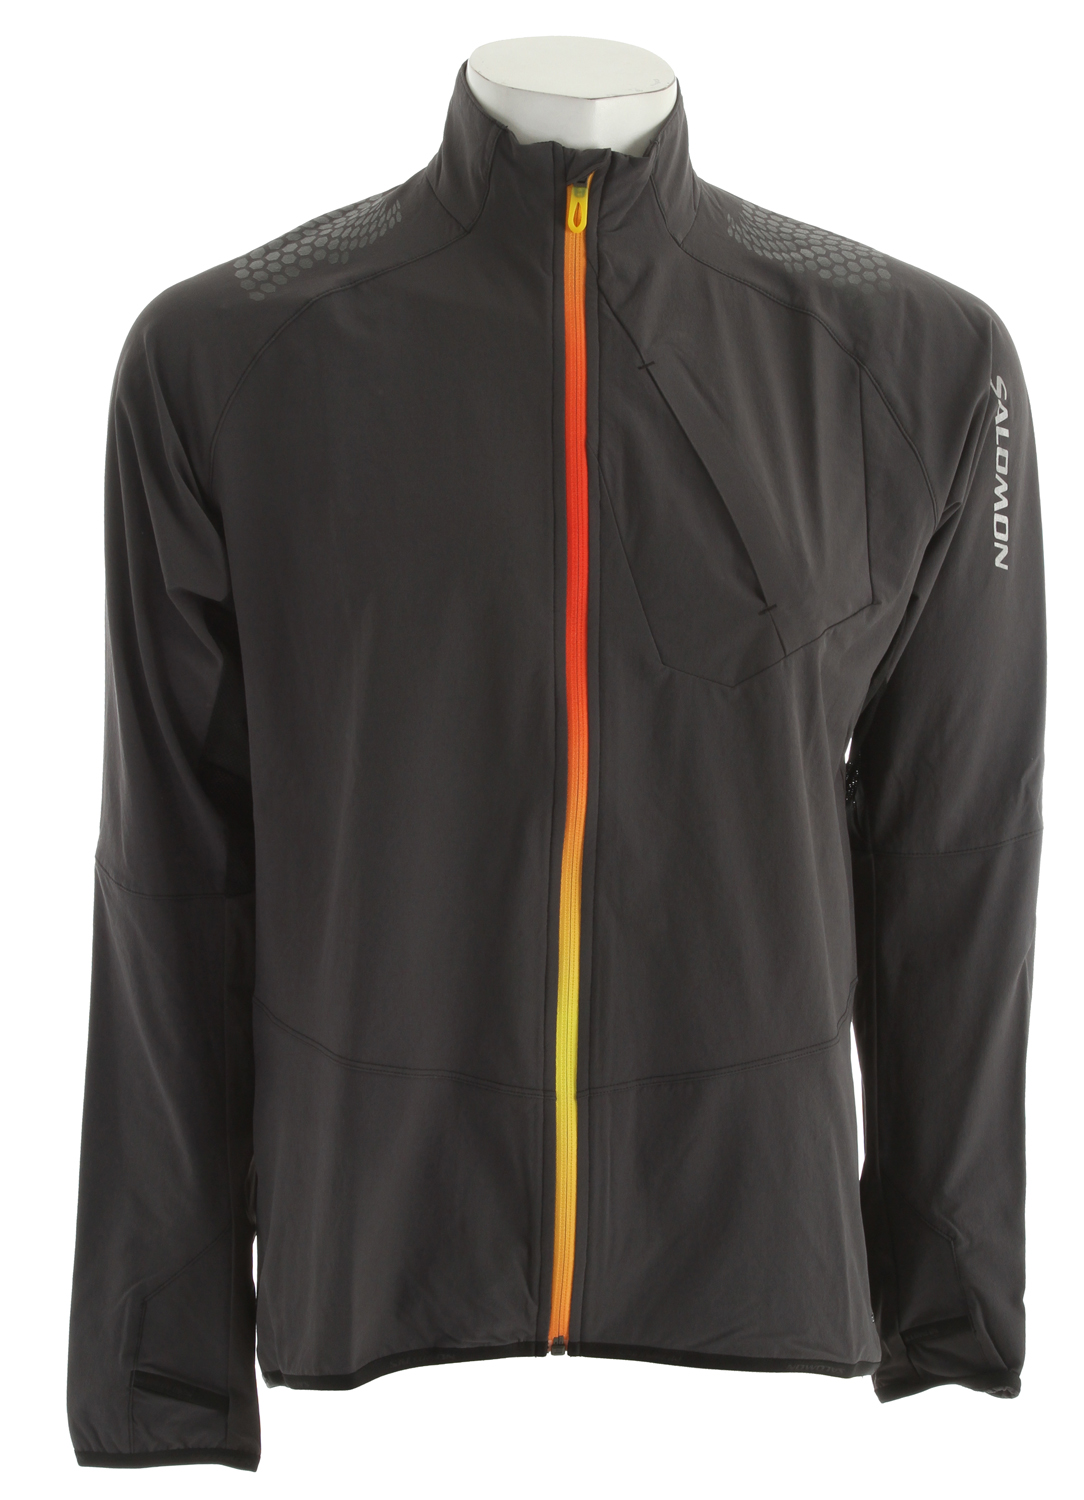 Camp and Hike This Smartskin jacket combines different SOFTSHELL fabrics. Wind protection on the front, lighter fabric in areas where movement and ventilation demand it. Mesh back panel provides maximum breathability under a pack. Great for highly aerobic activity in cold weather.Key Features of the Salomon XA Smartskin Softshell Jacket: Active fit 1 Chest pocket Stability print Thumb loop ClimaWind Stretch woven Actilite Stretch Mesh Actilite Stretch woven ACK INSERT: PES 91%, EL 9% BODY INSERT: PA 86%, EL 14% BODY: PA 91%, EL 9% - $87.95